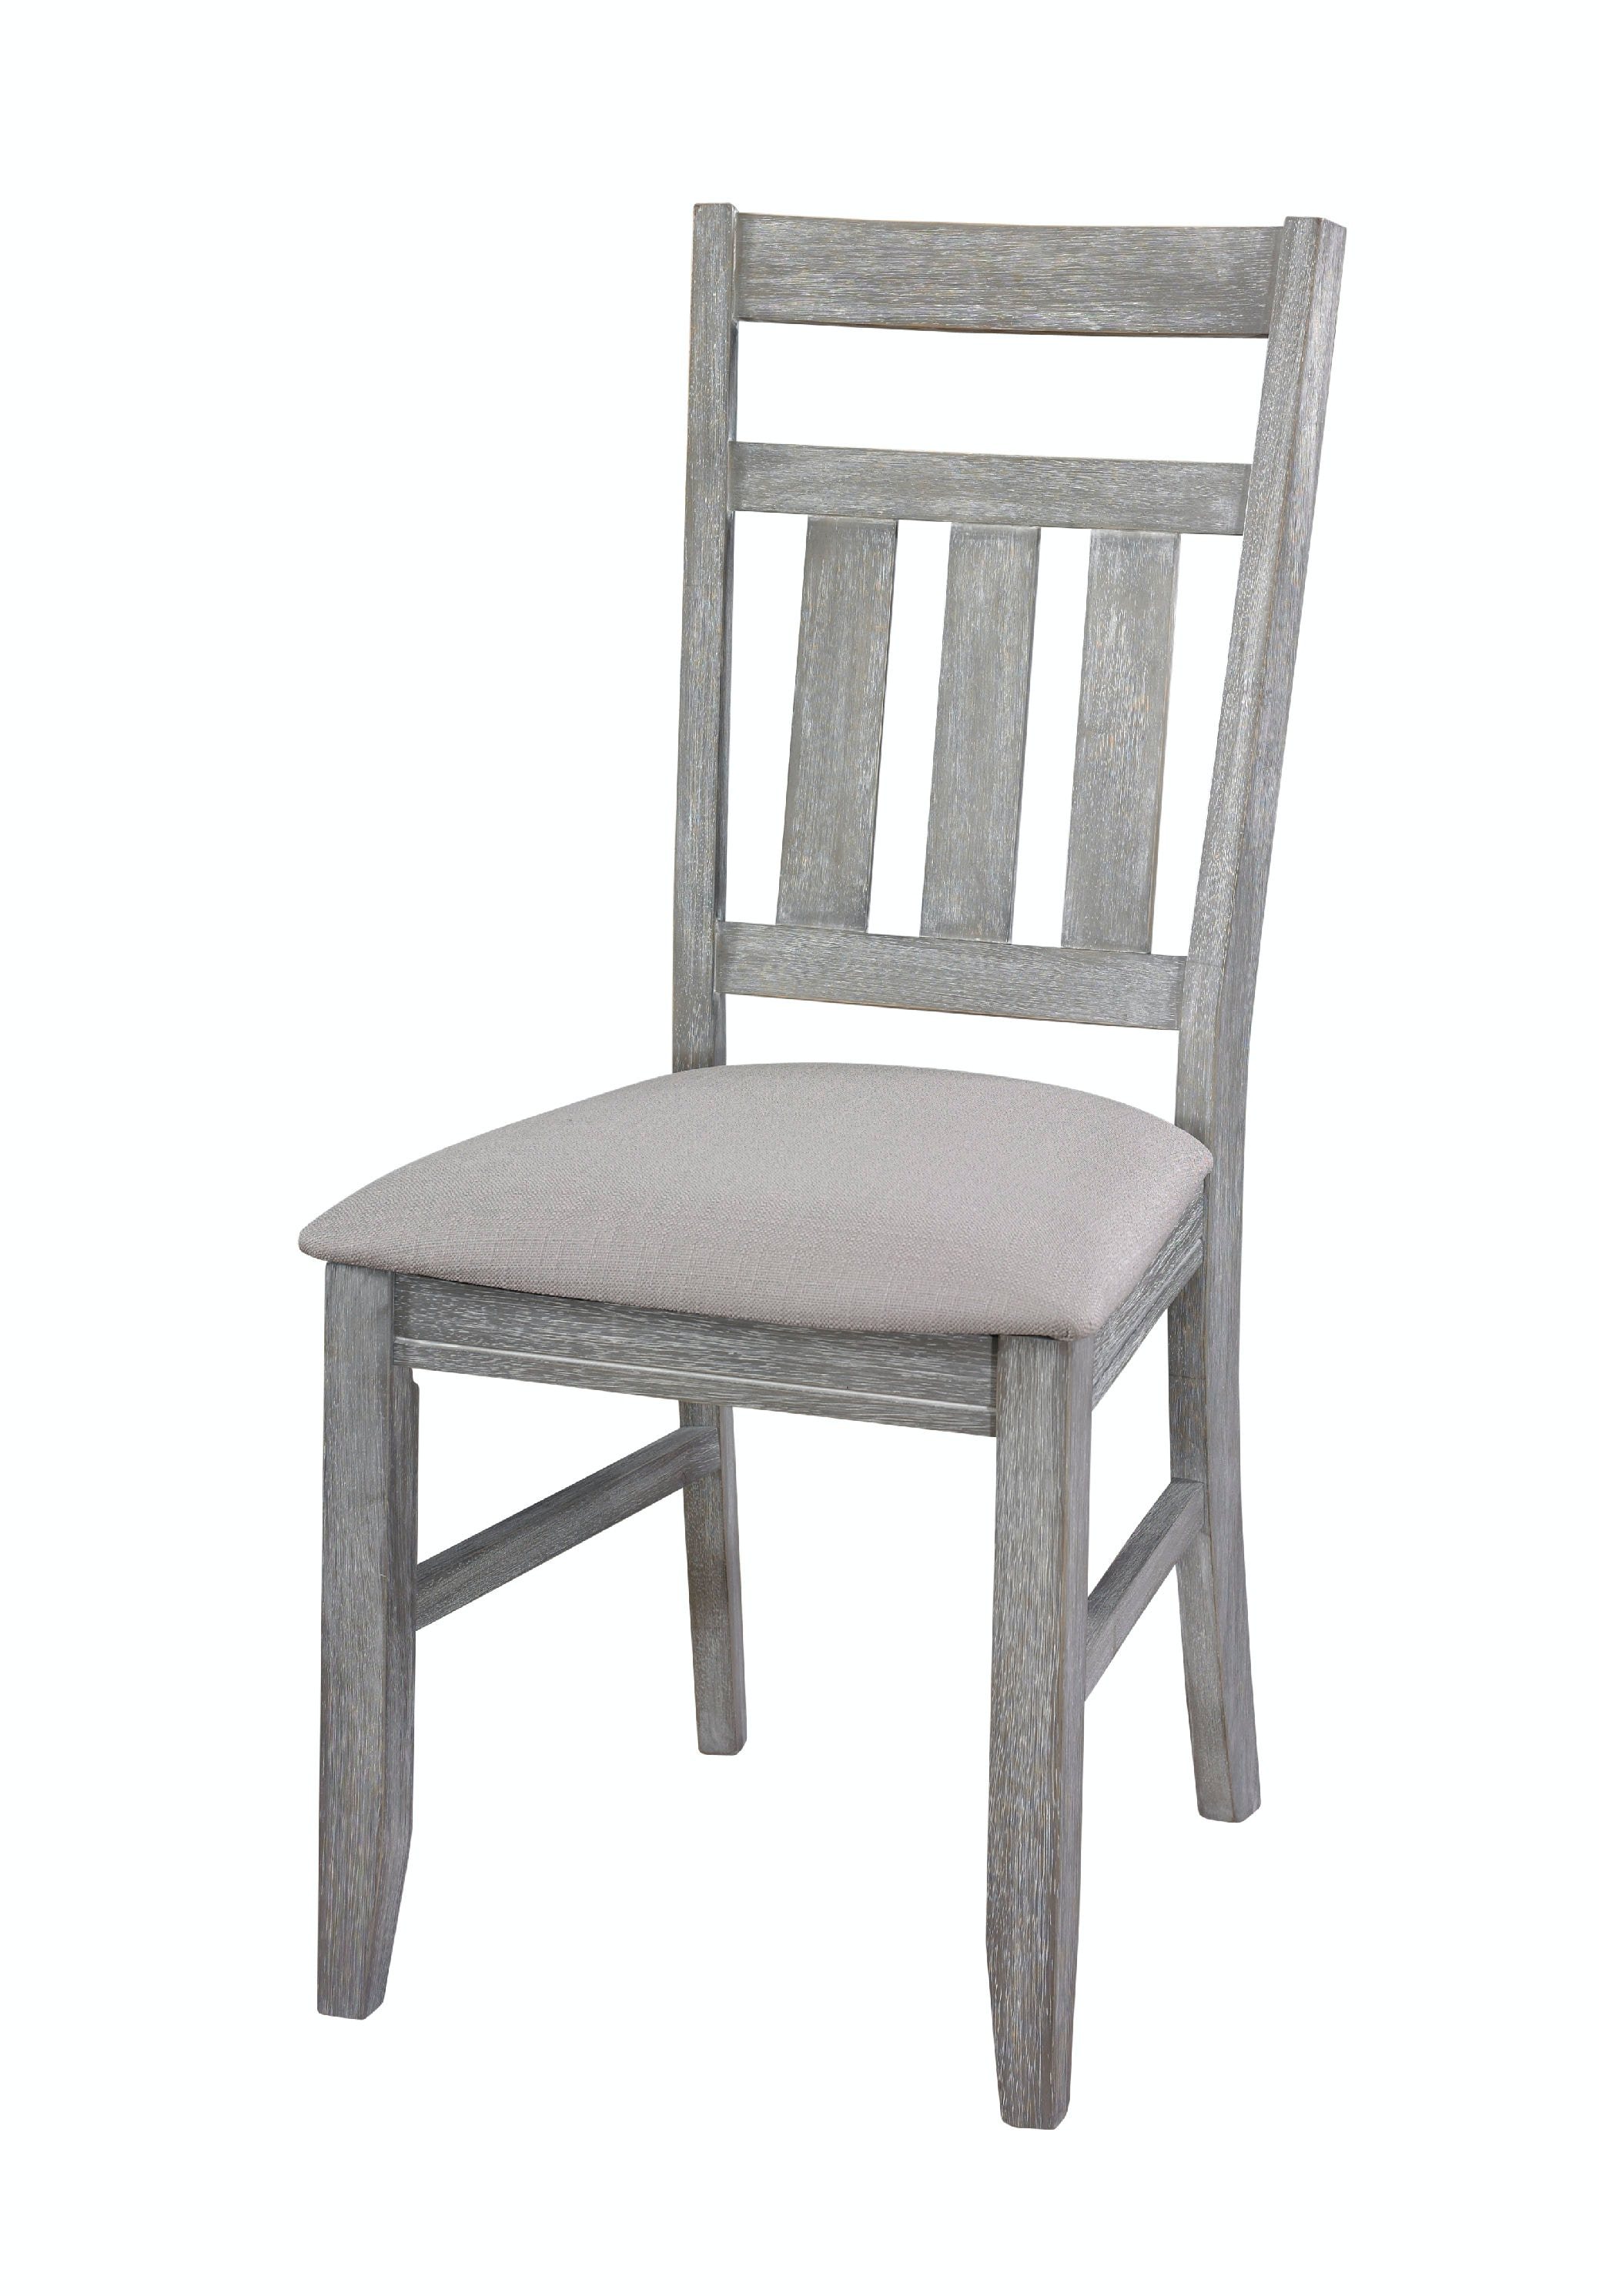 Powell Furniture Dining Room Turino Dining Side Chair 18 Inch Seat